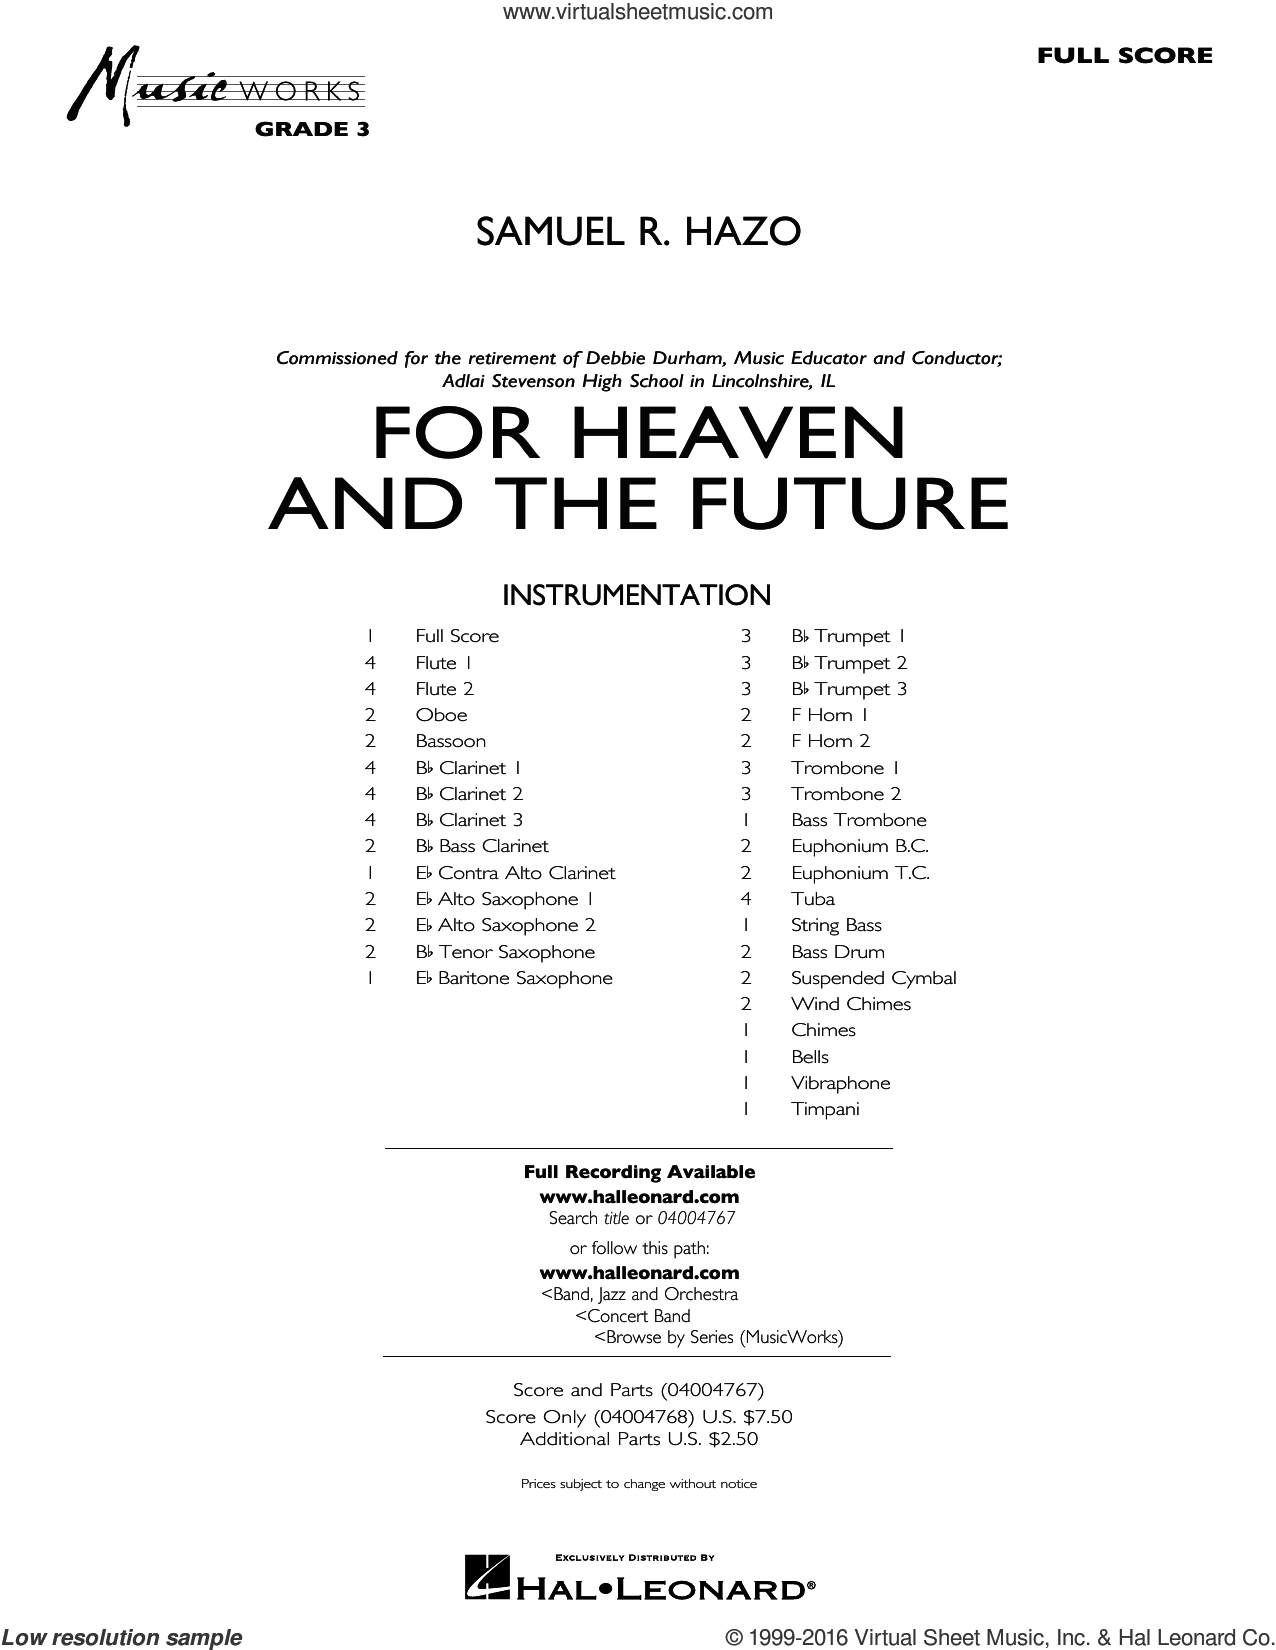 For Heaven and the Future (COMPLETE) sheet music for concert band by Samuel R. Hazo, intermediate